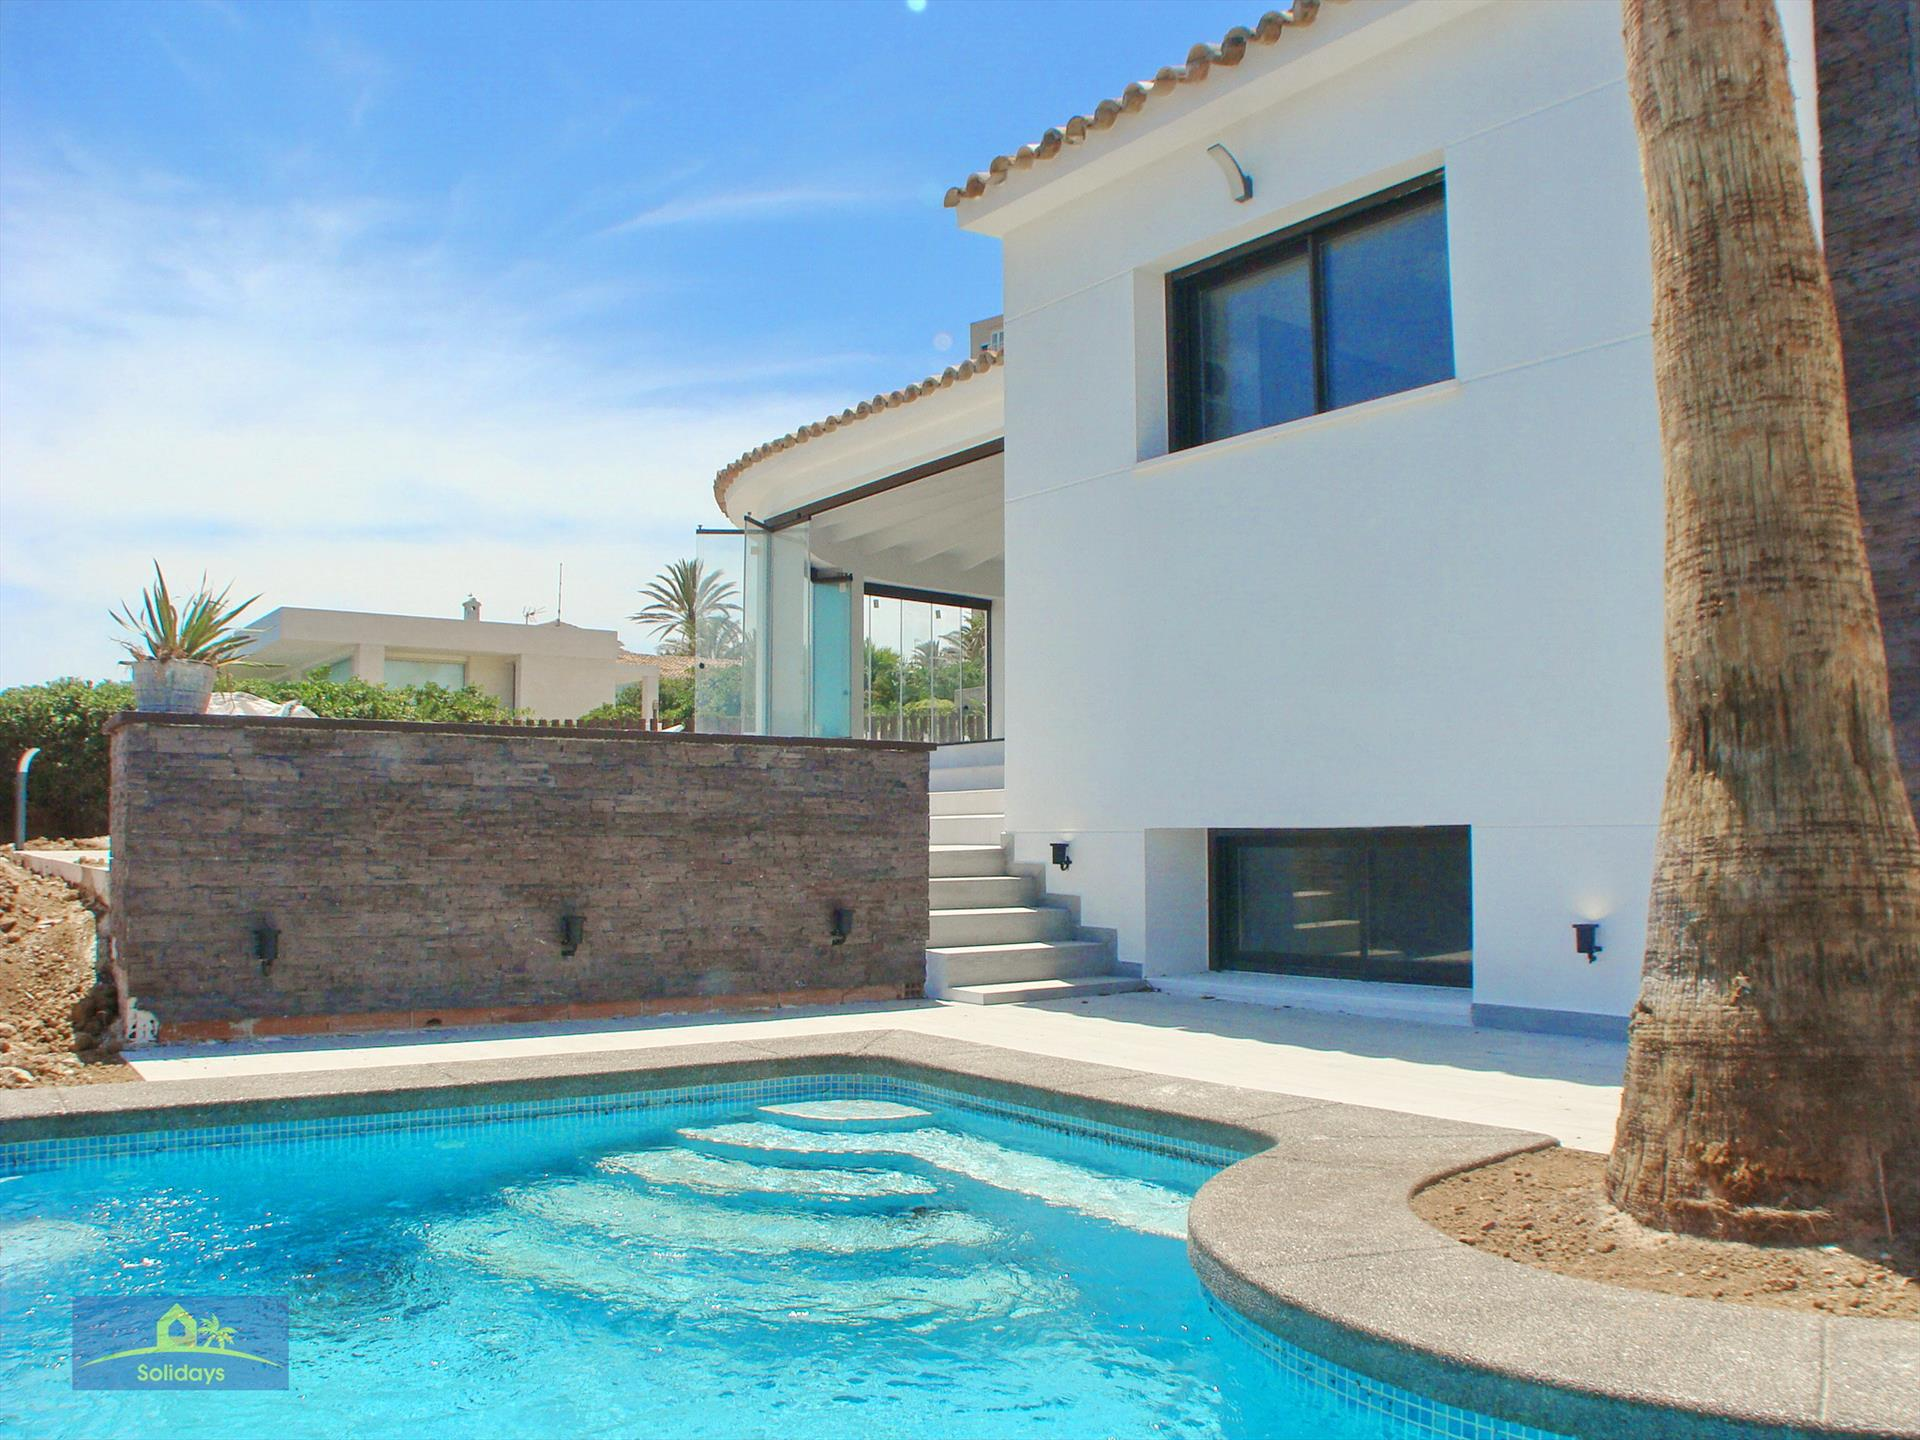 Villa Ultramar, Modern and  luxury villa in Javea, on the Costa Blanca, Spain  with heated pool for 10 persons.....